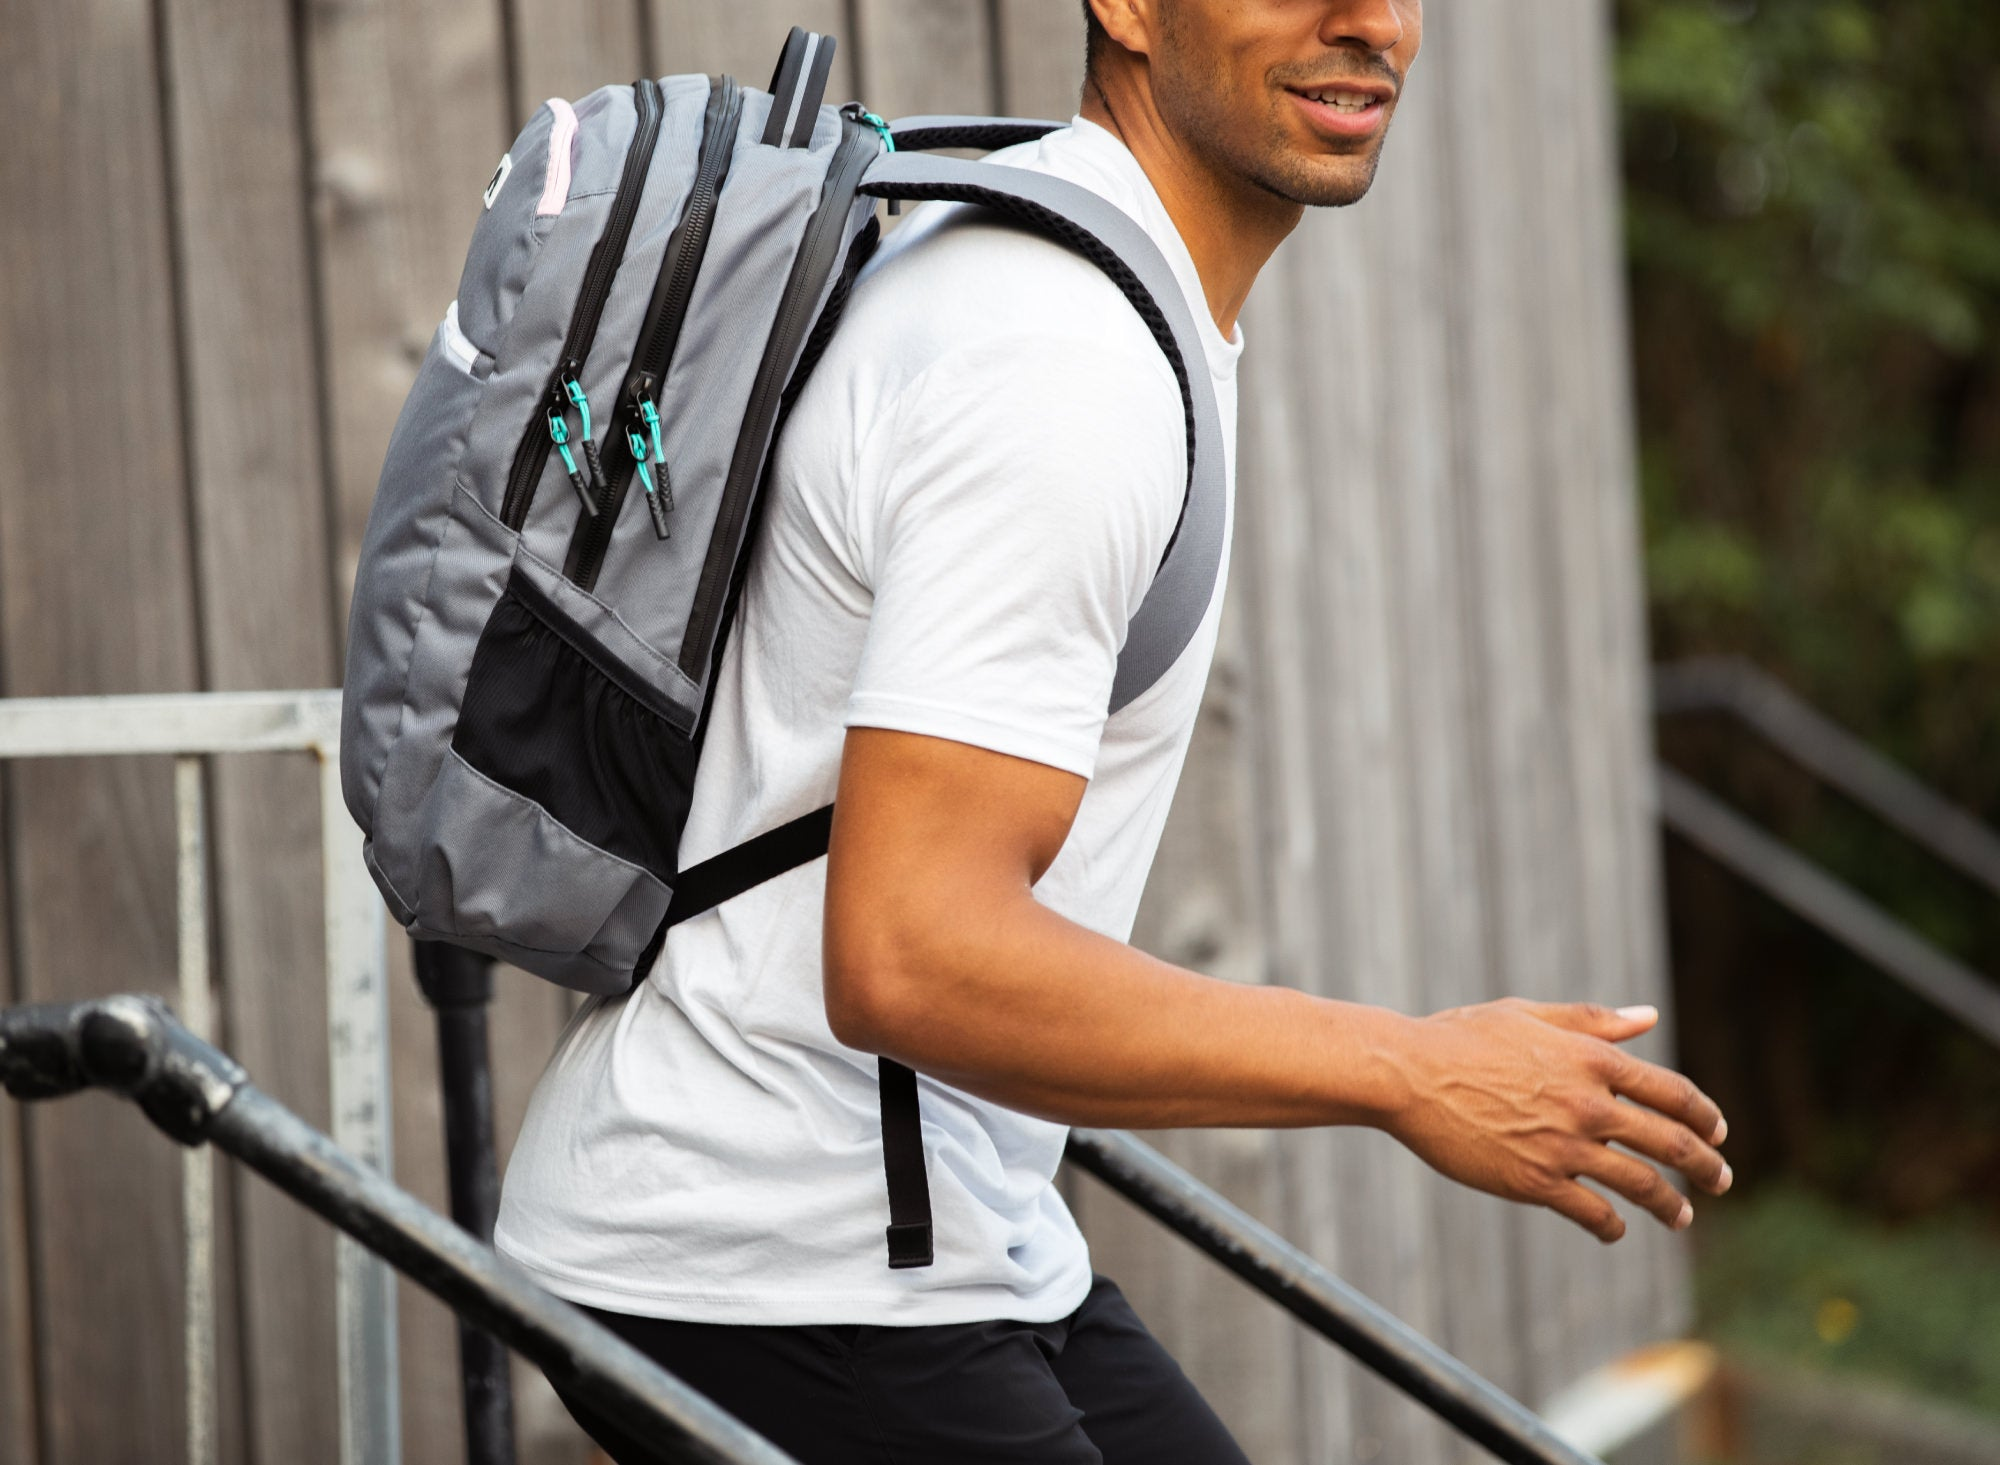 Jones A1 Backpack for the professional golfer